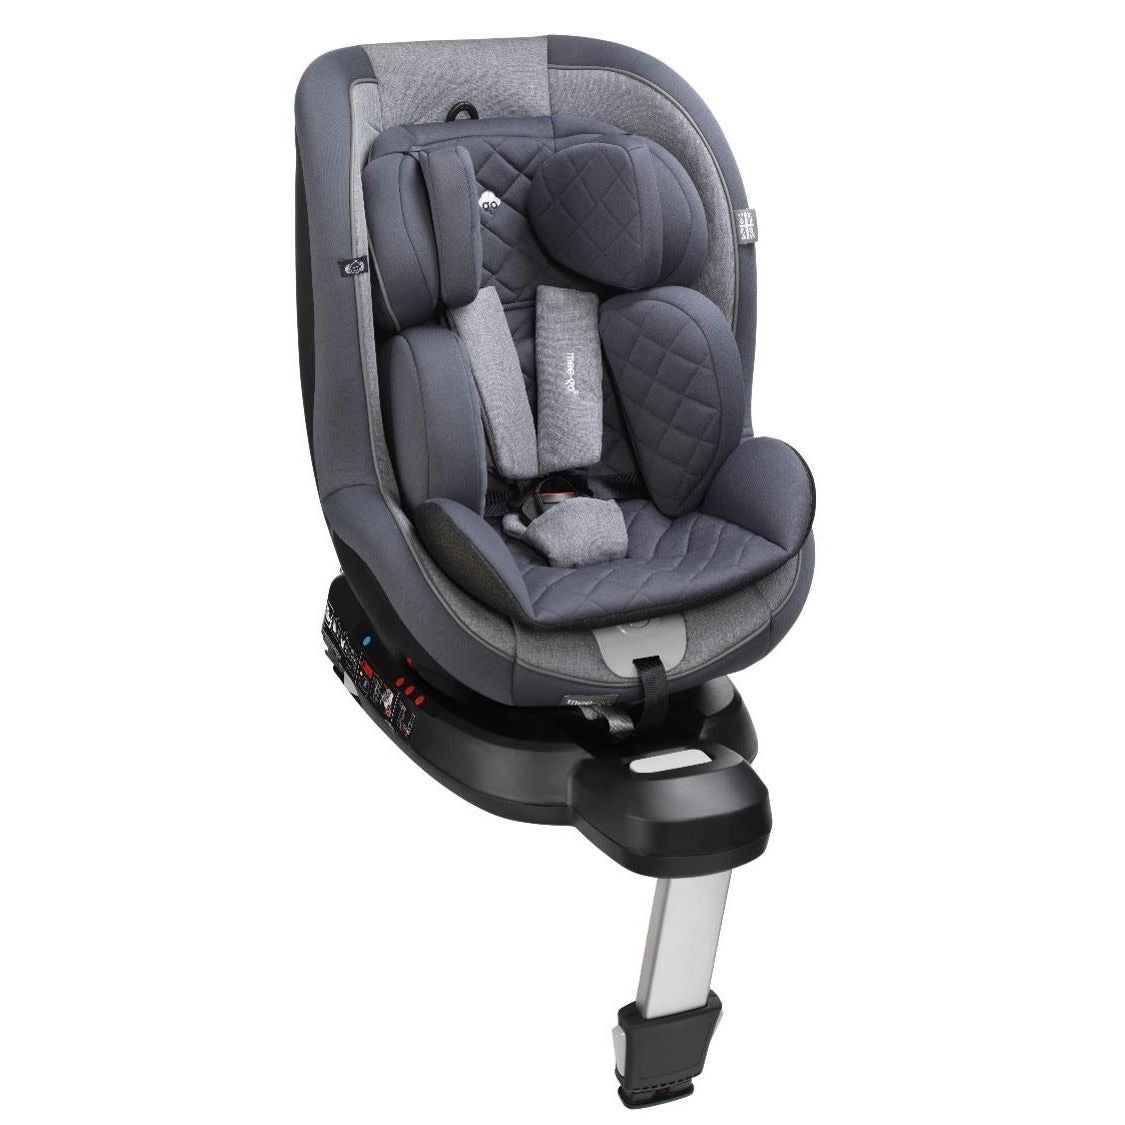 Mee-Go Swirl Pebble Grey I-Size Group 0+/1 360 Spin Car Seat